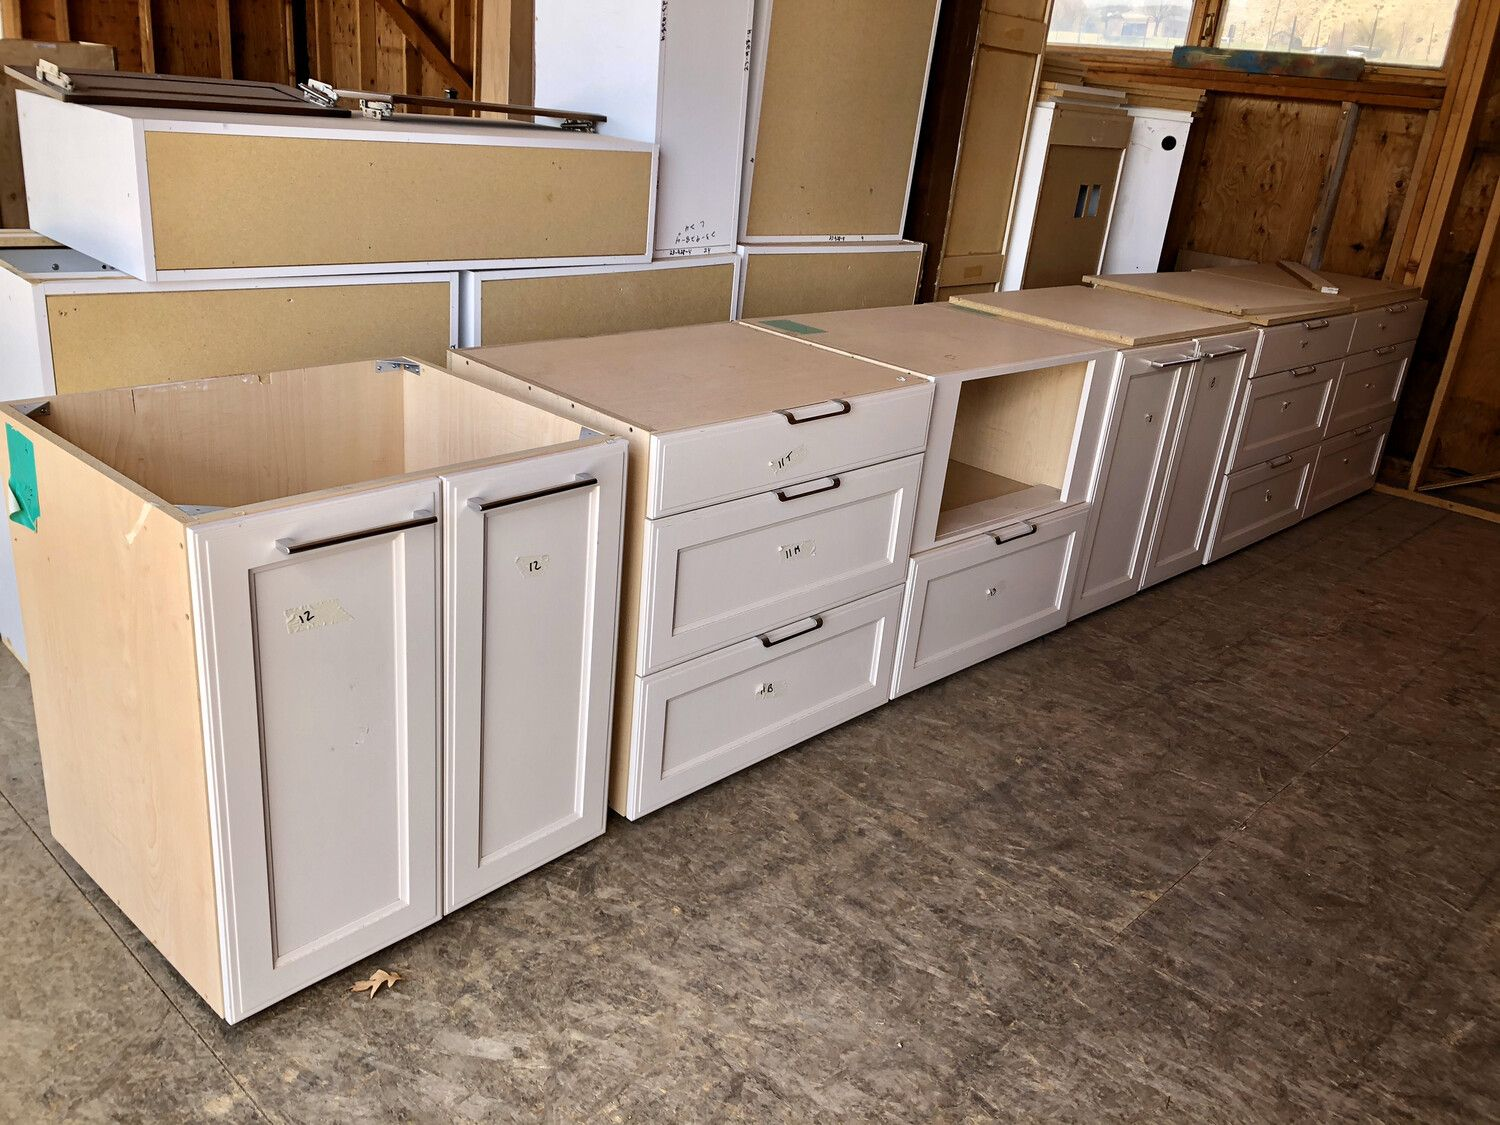 Habitat For Humanity Cabinets - Kitchen Cabinets